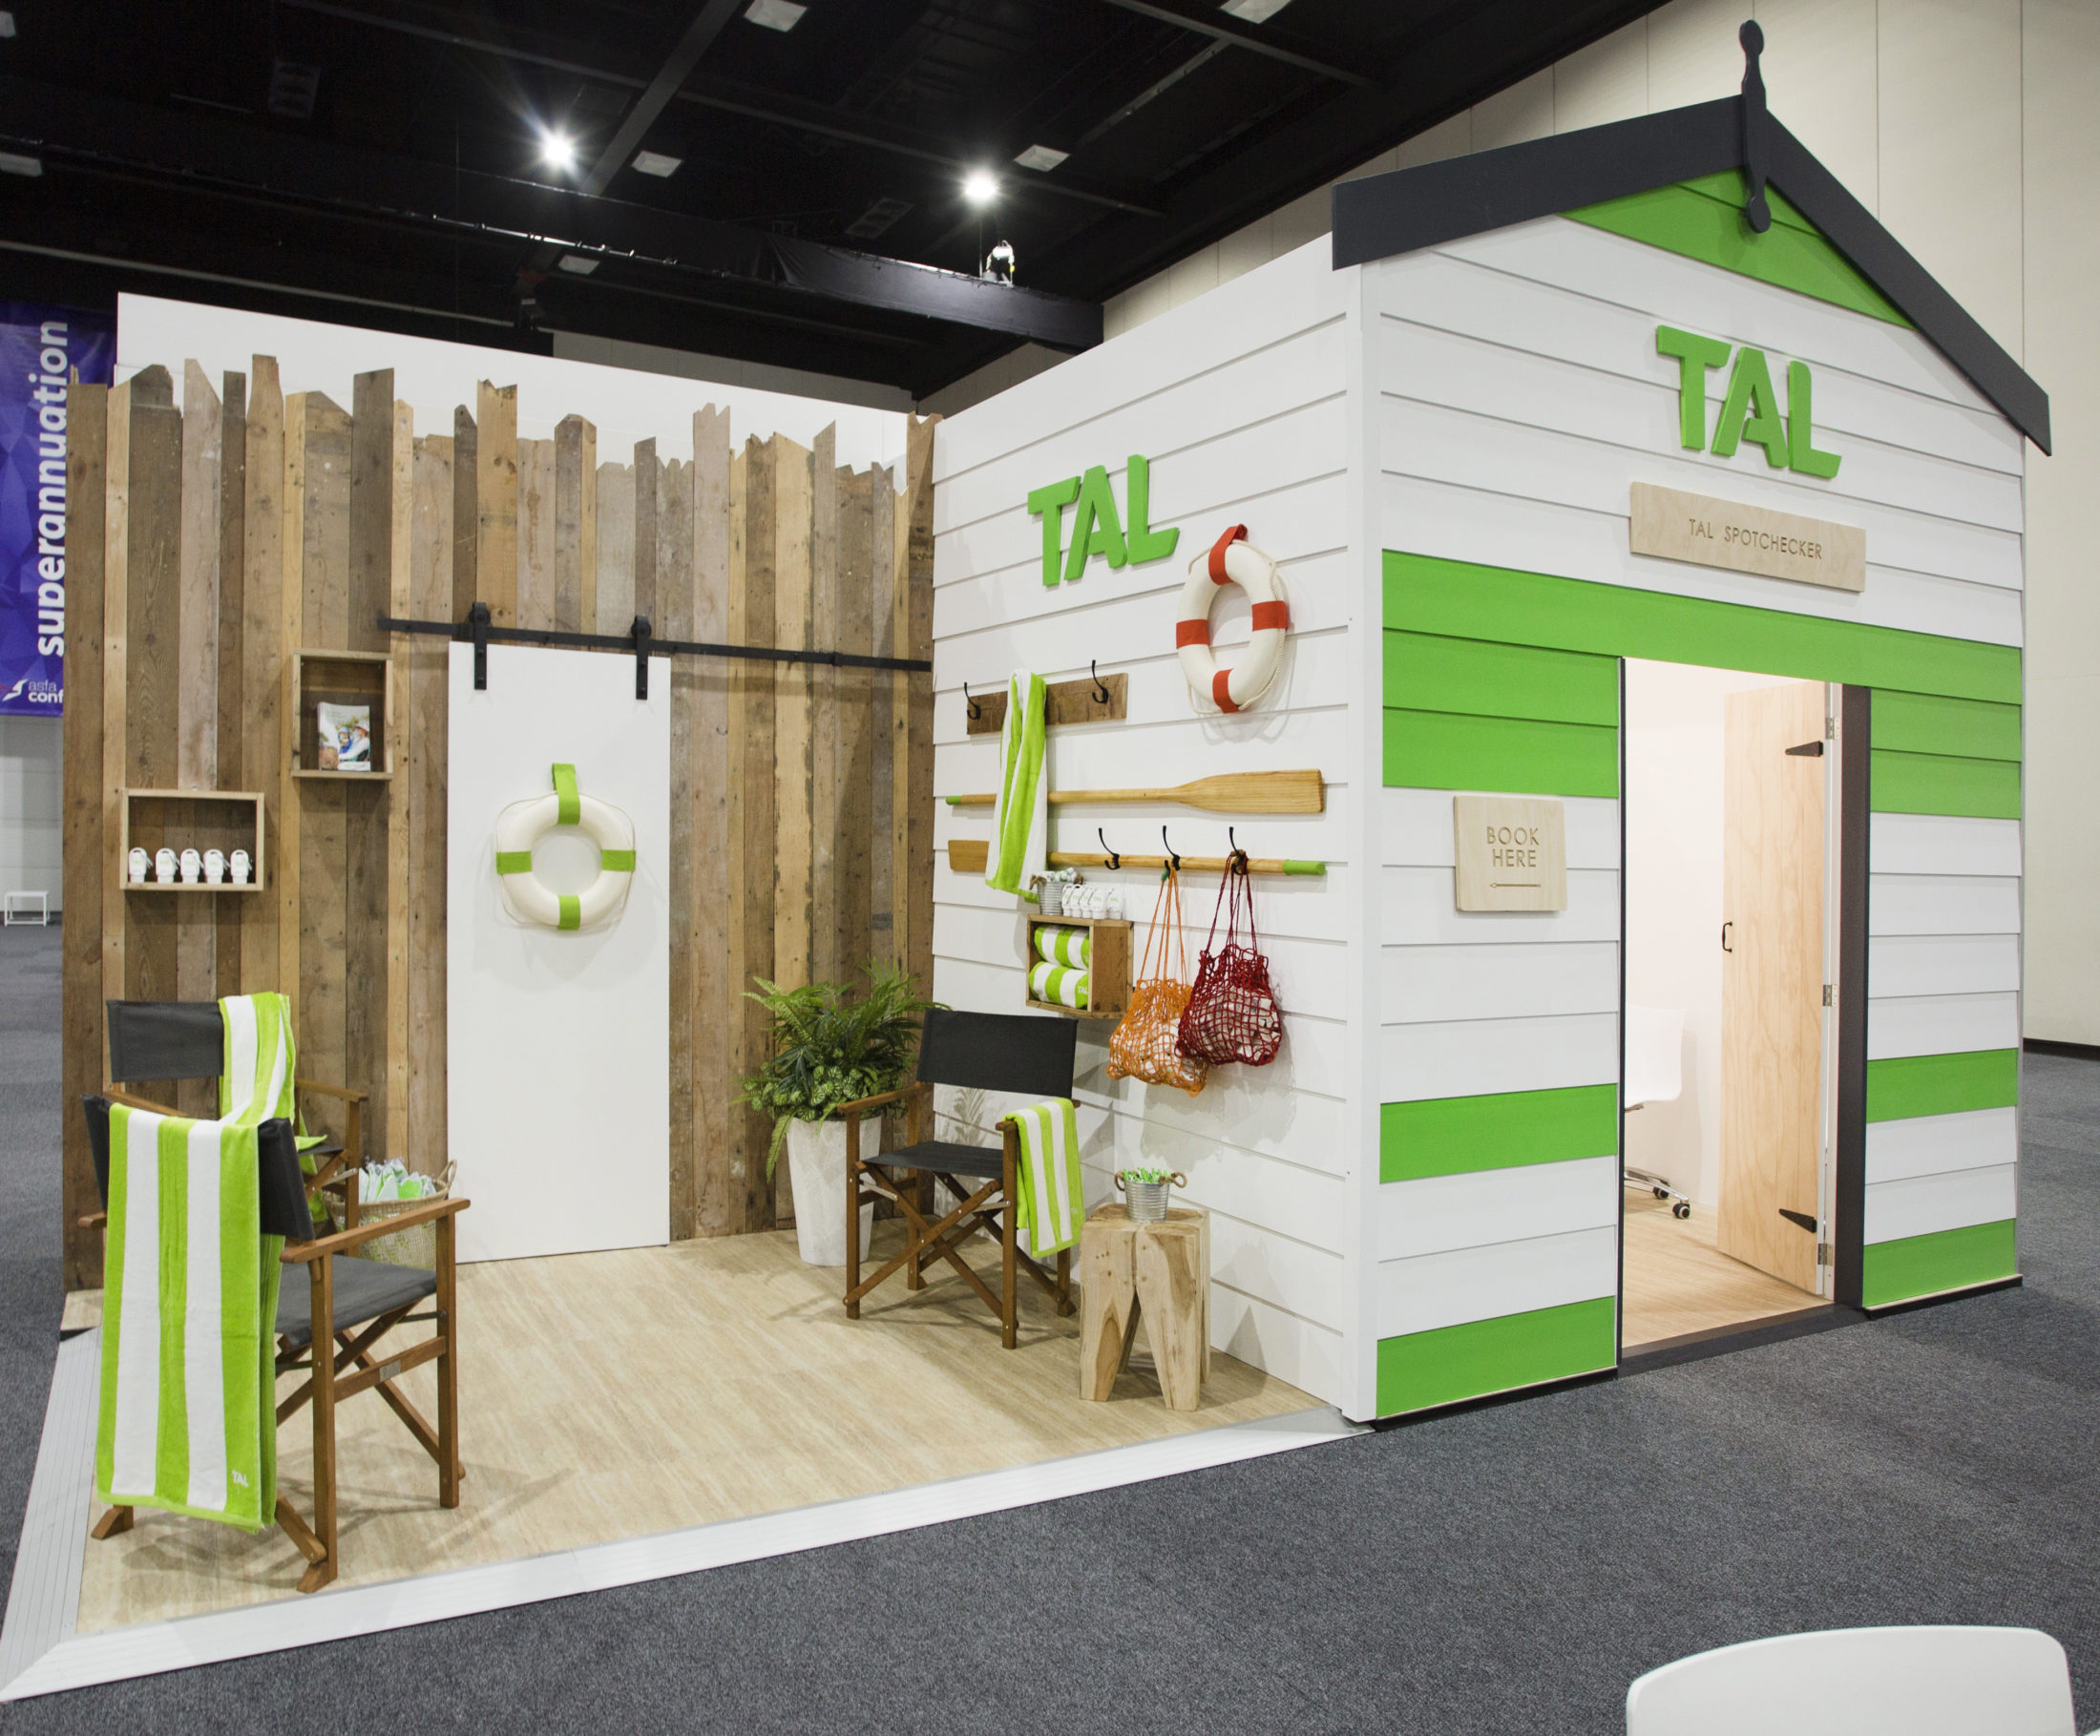 Exhibition Stand Guide : Let them know here is your guide in hiring builders for your